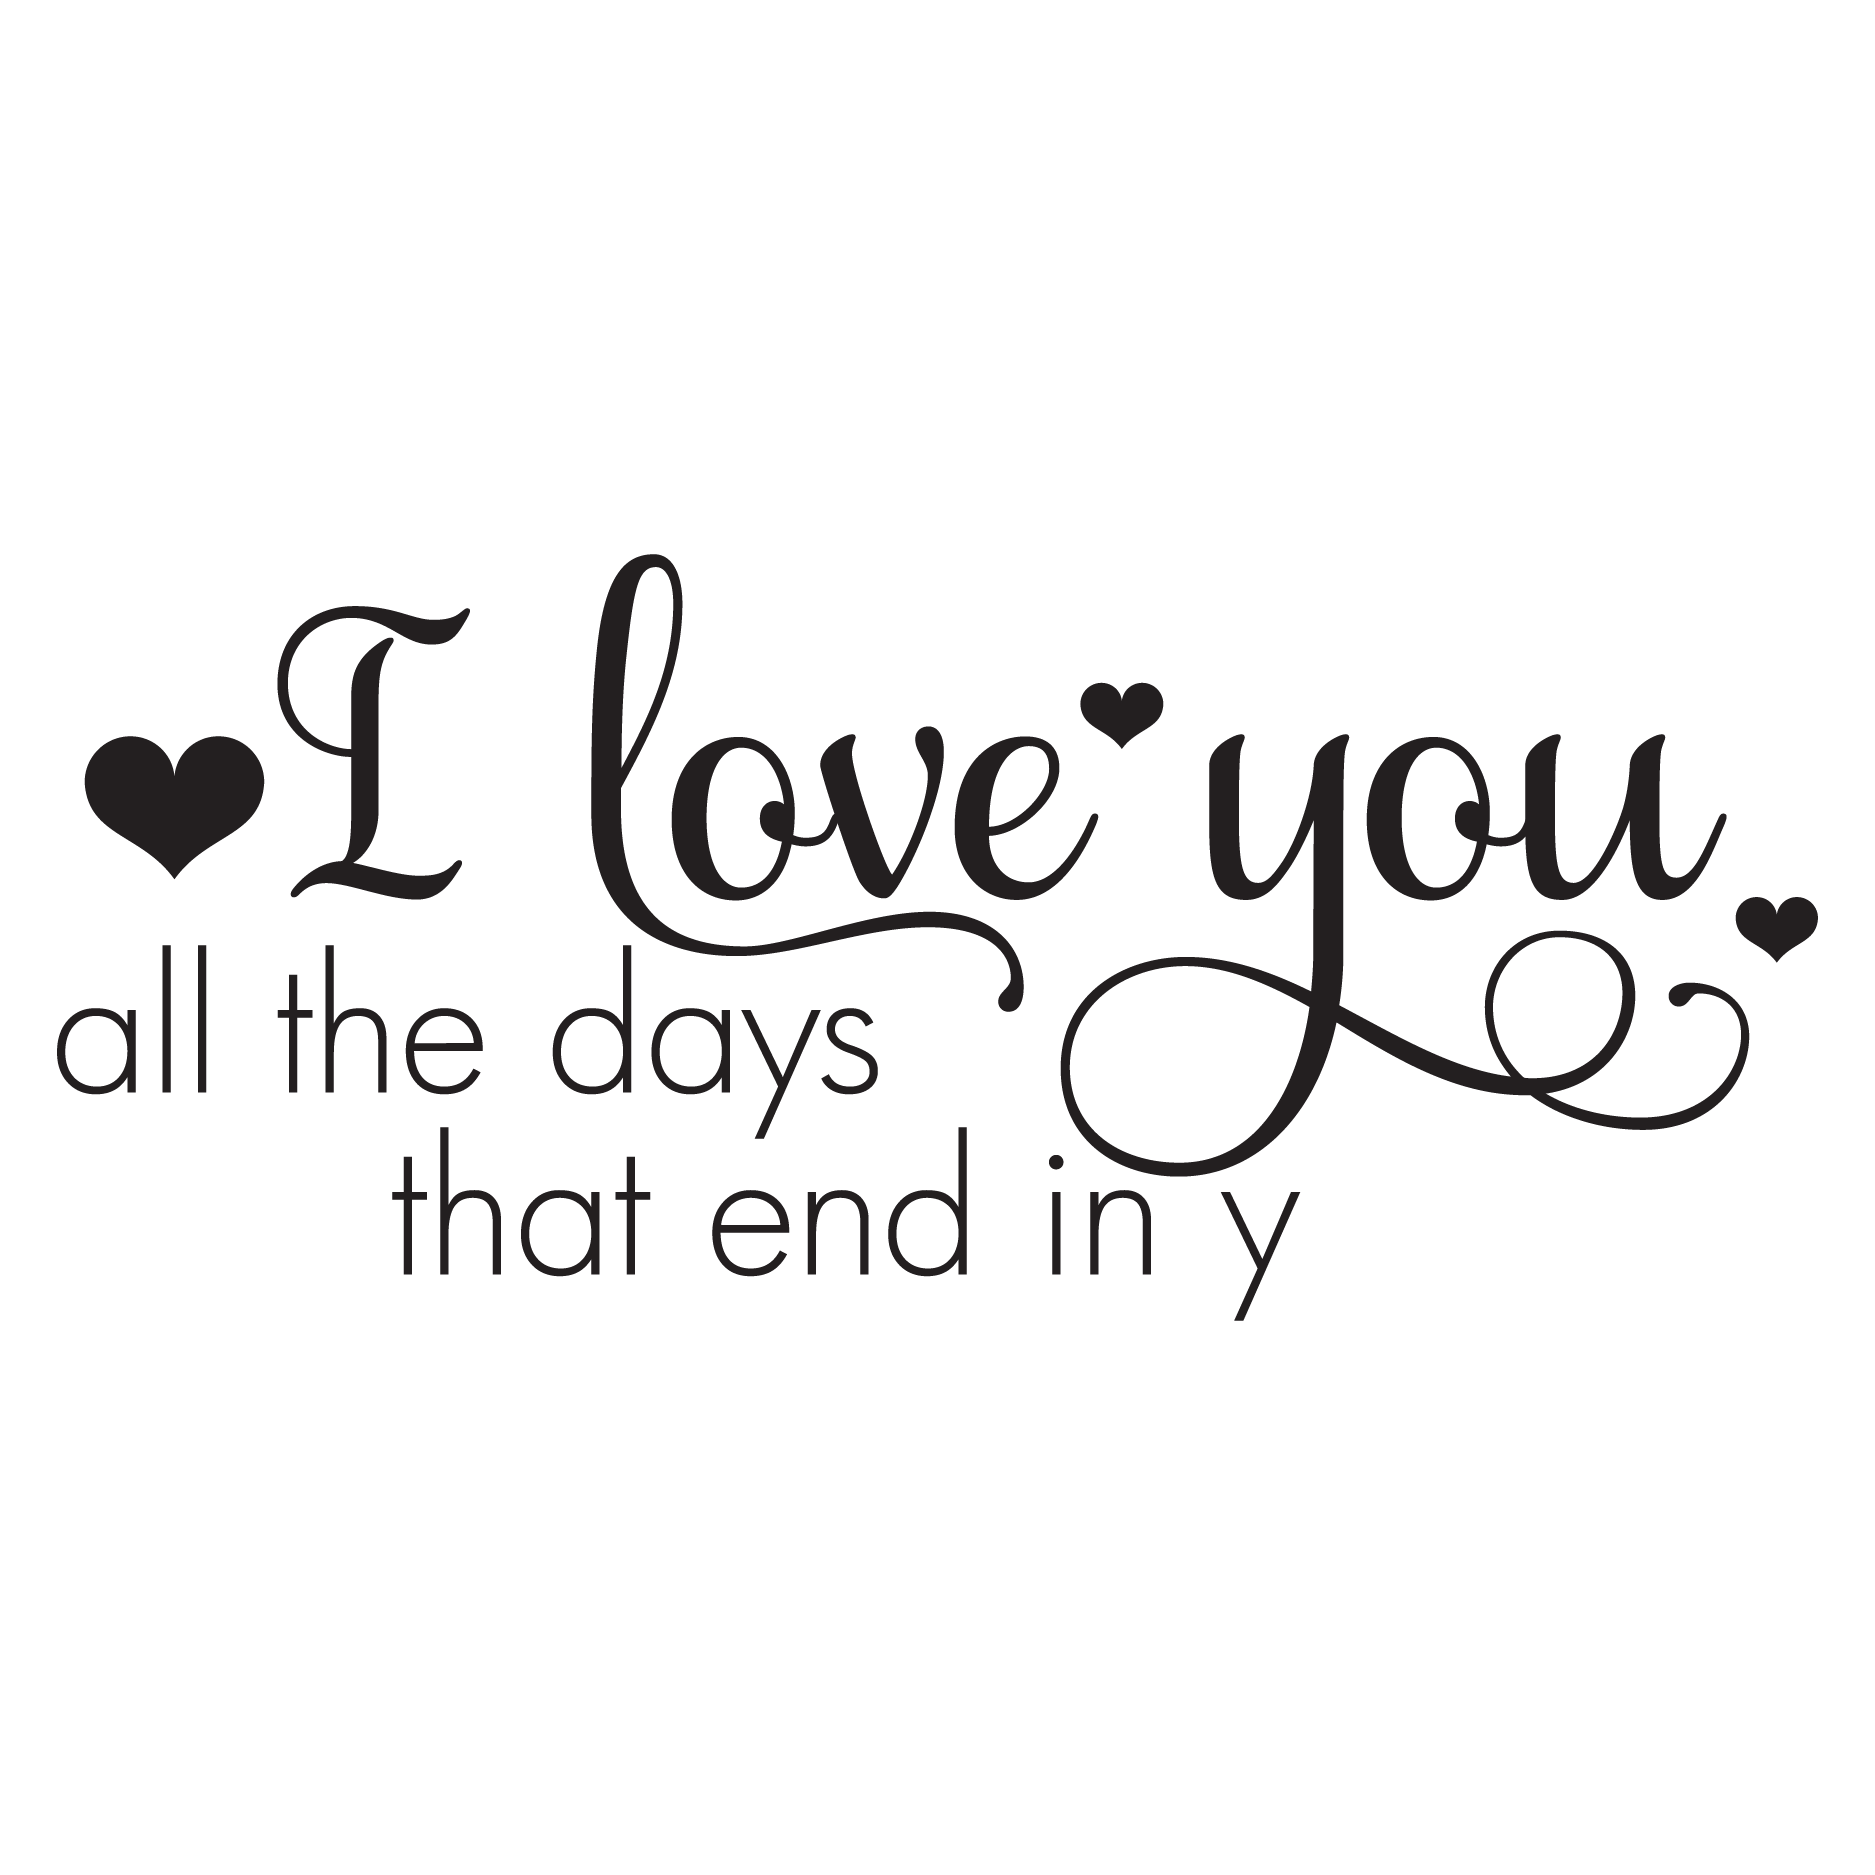 Days That End In Y Wall Quotes Decal